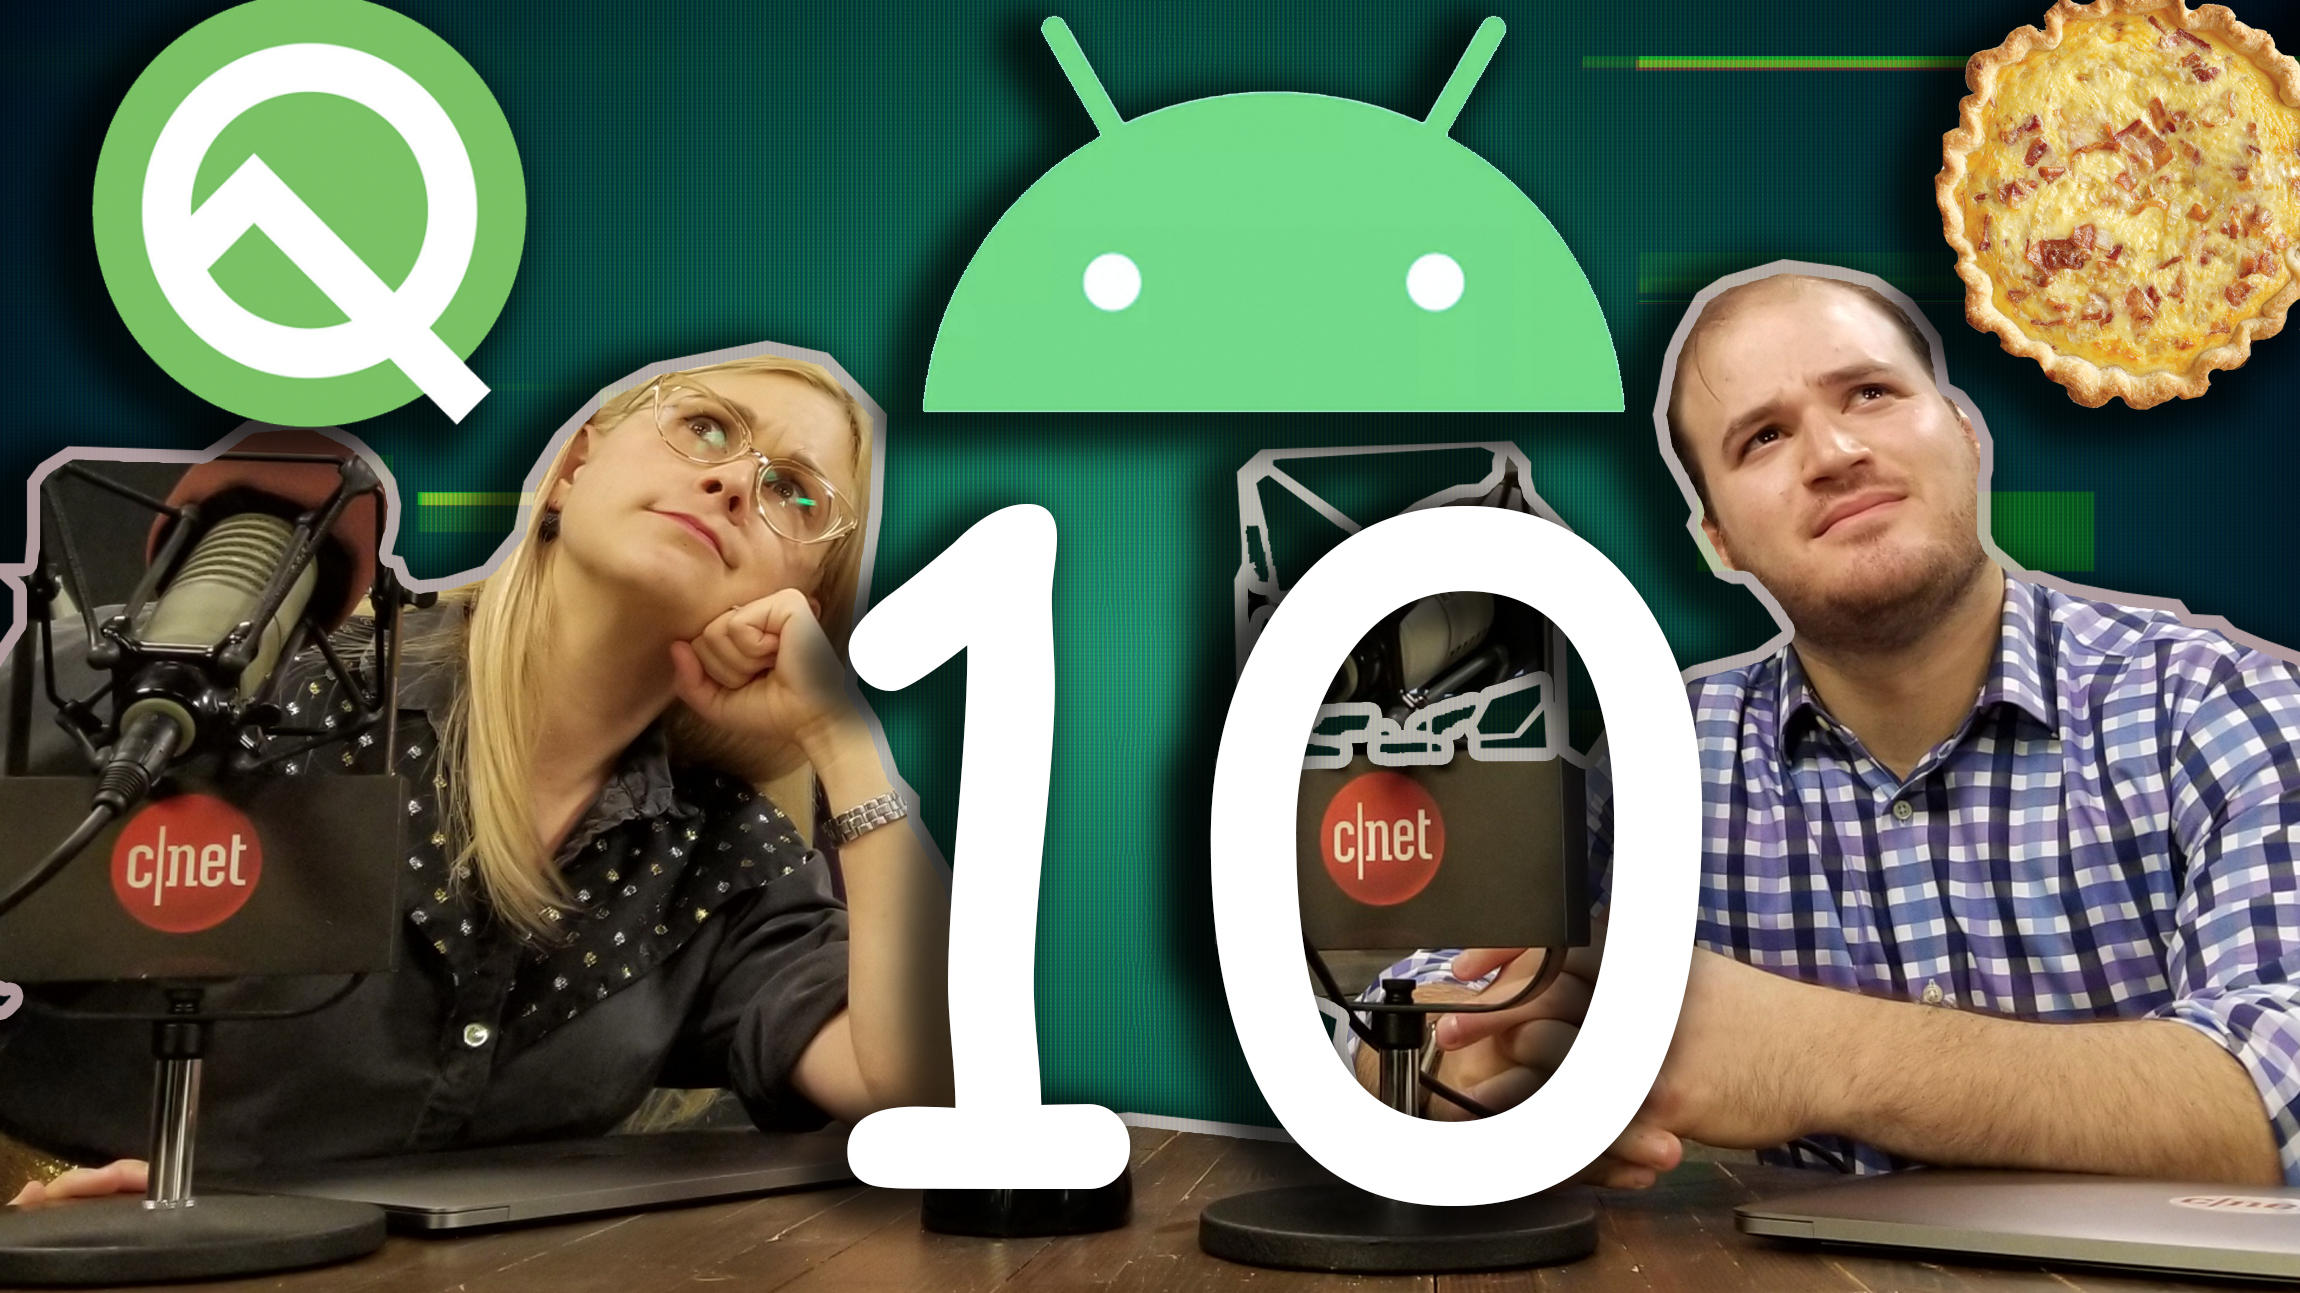 Video: Android Q gets a name (and the sugar high is over) (The Daily Charge, 8/22/2019)